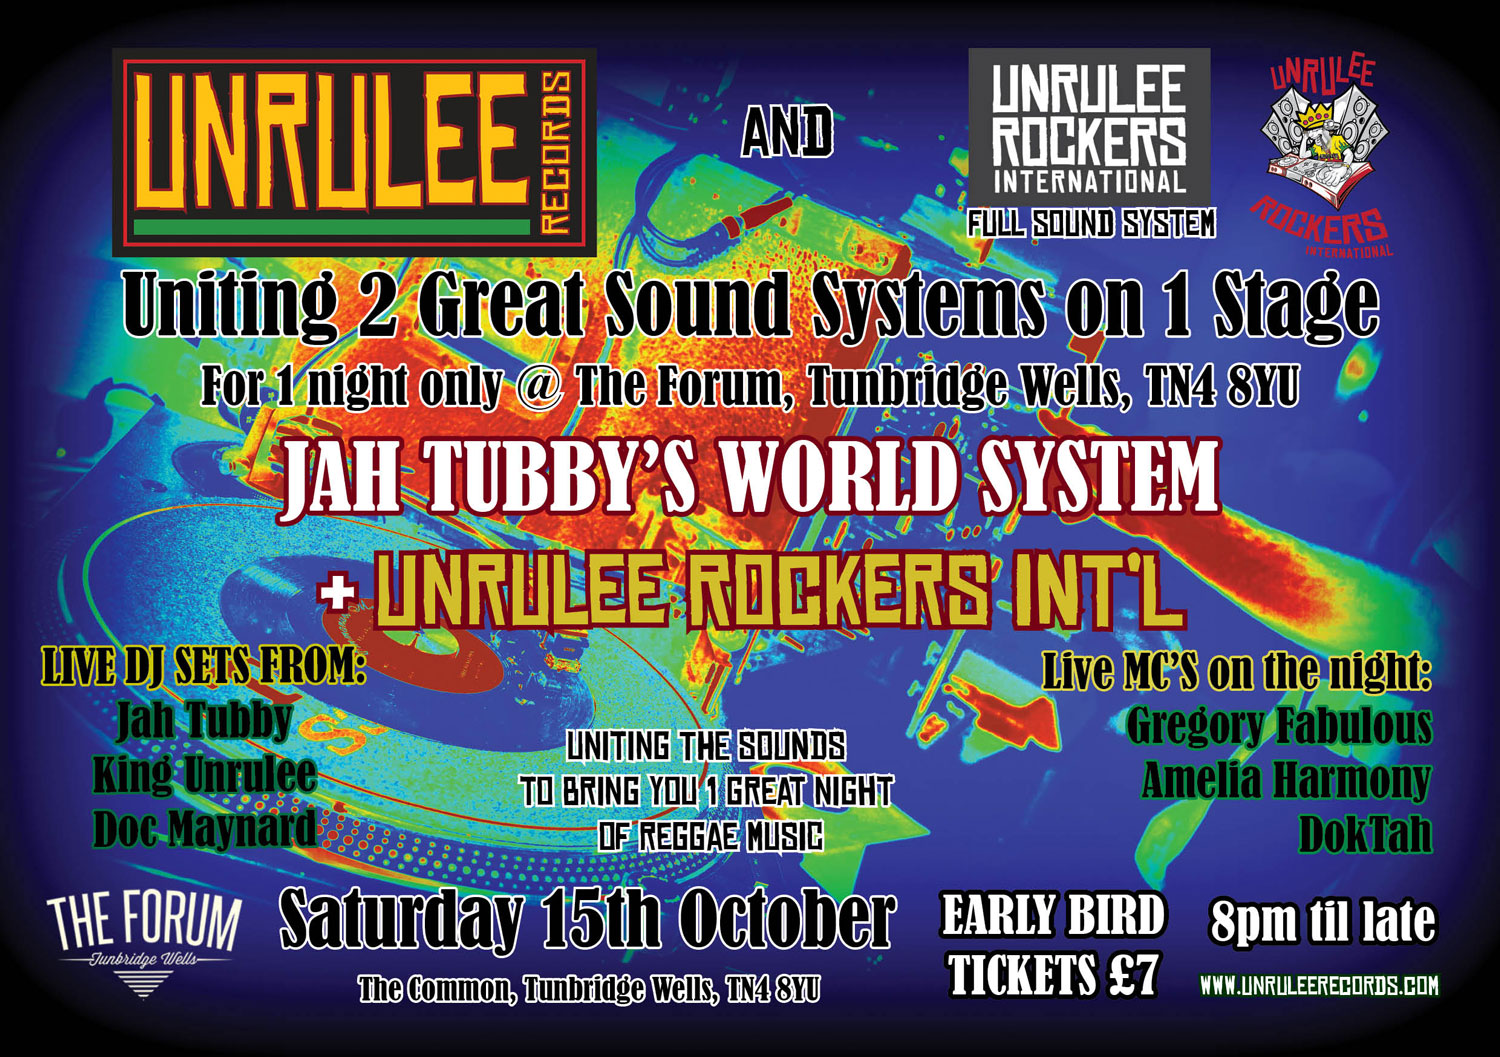 Jah Tubby's World System + Unrulee Rockers International